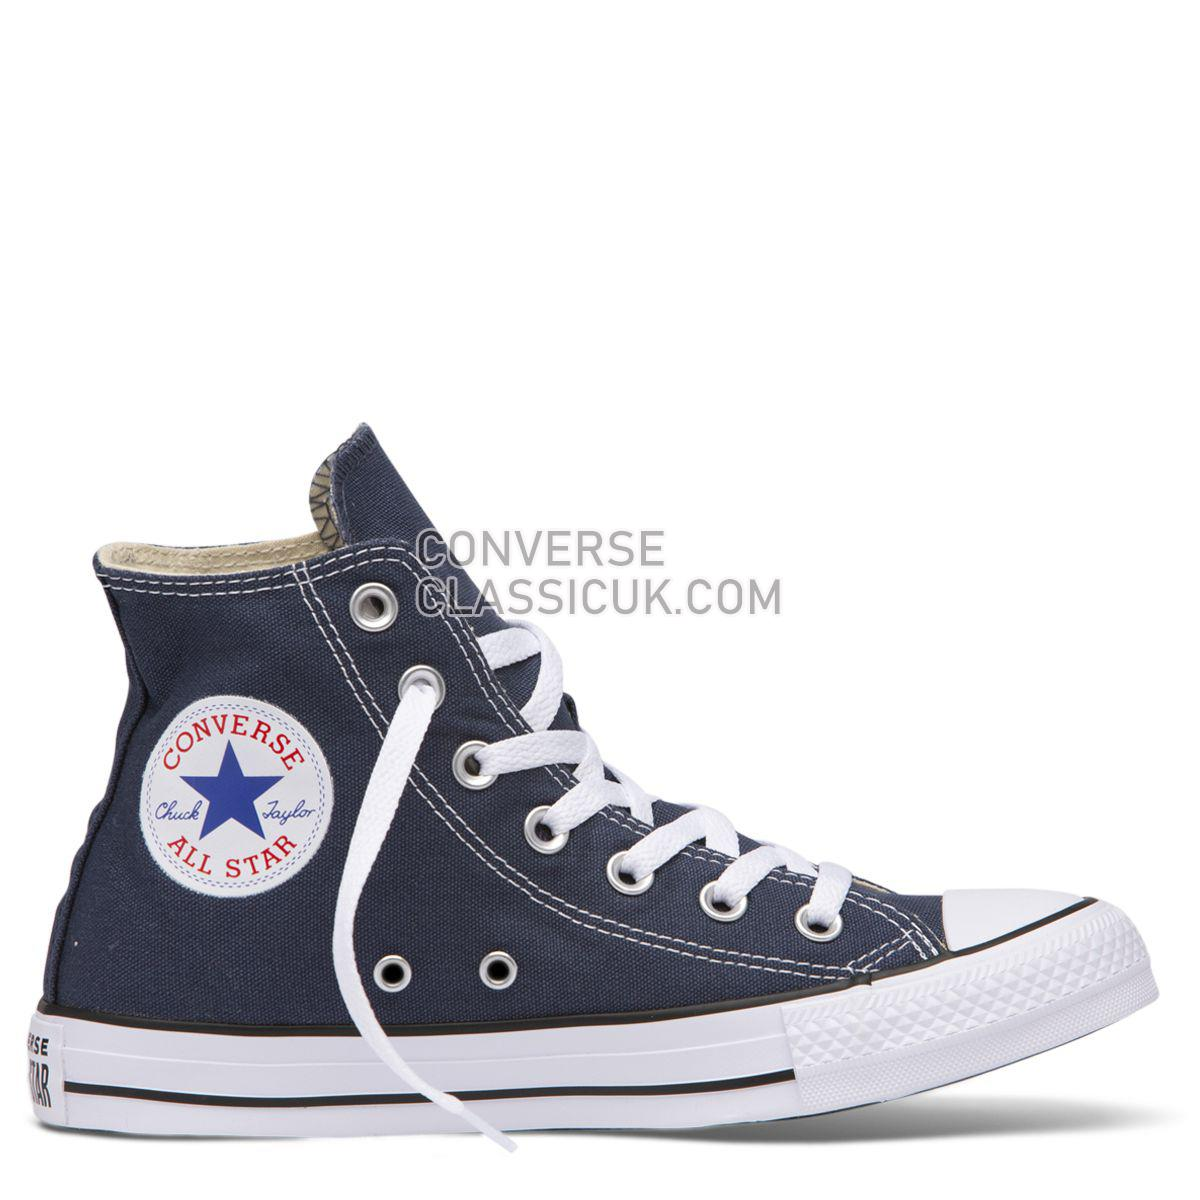 Converse Chuck Taylor All Star Classic Colour High Top Navy Mens Womens Unisex 19622 Navy Shoes